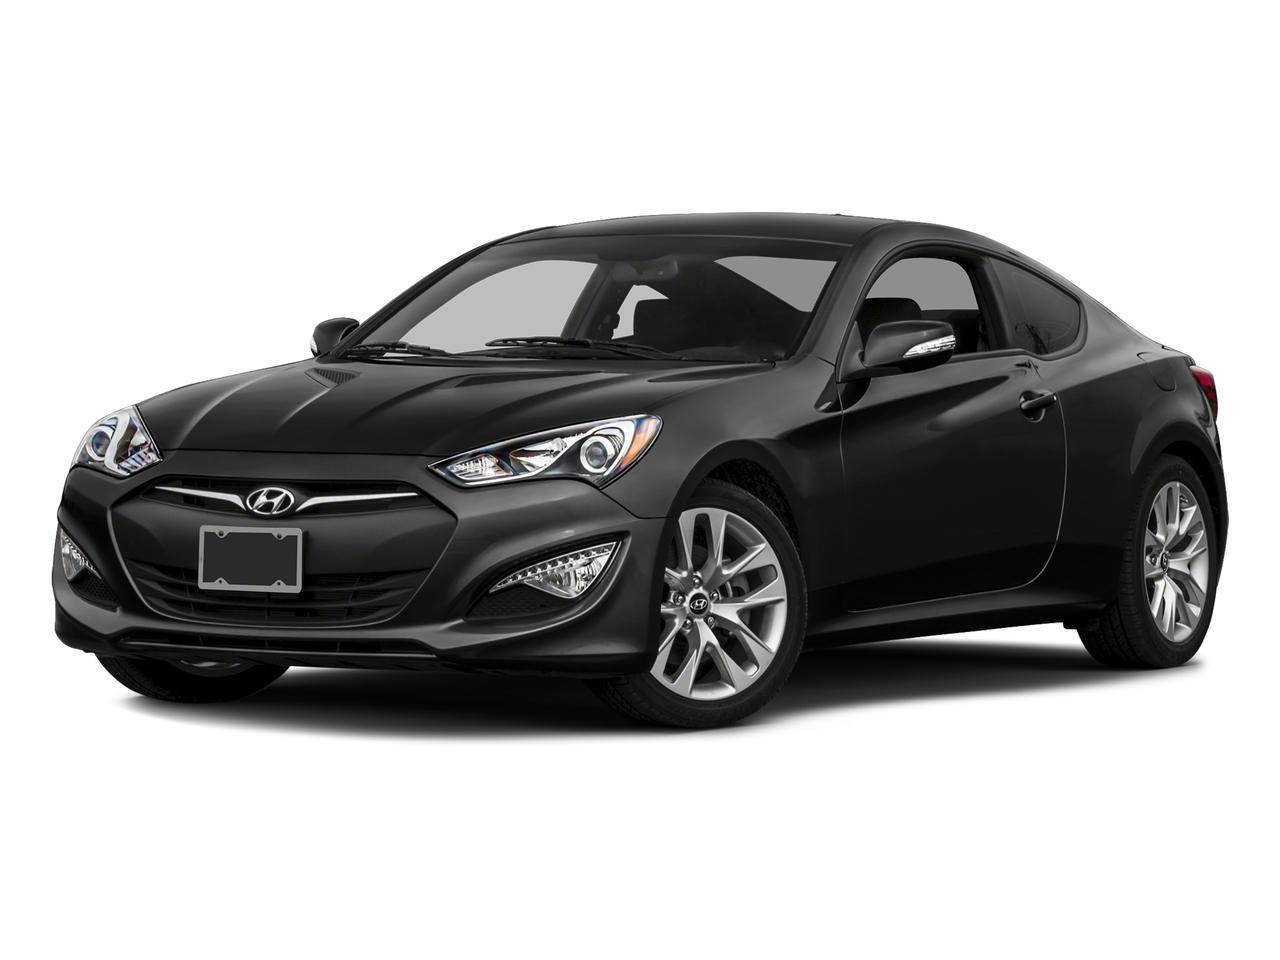 2016 Hyundai Genesis Coupe Vehicle Photo in Rockville, MD 20852